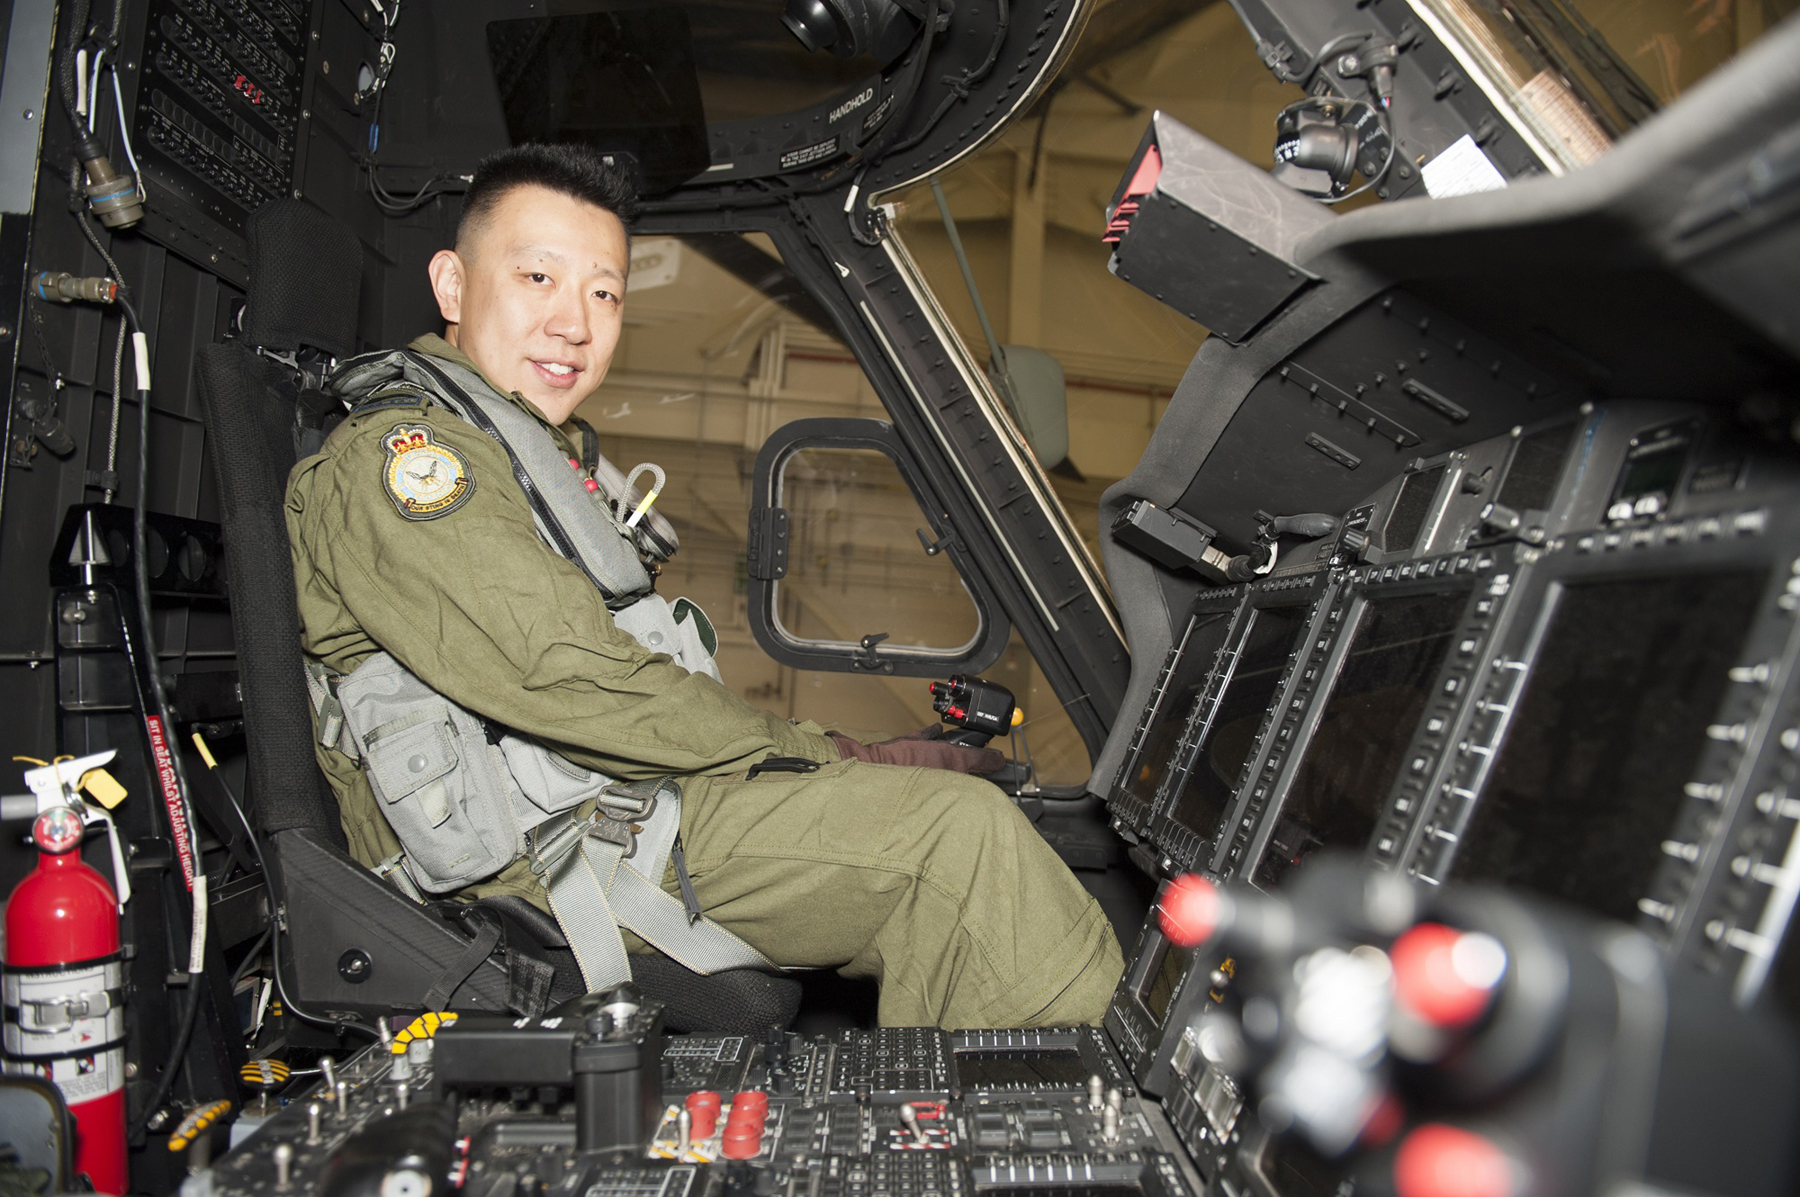 A man wearing an olive green flight suit sits in the cockpit of a helicopter.